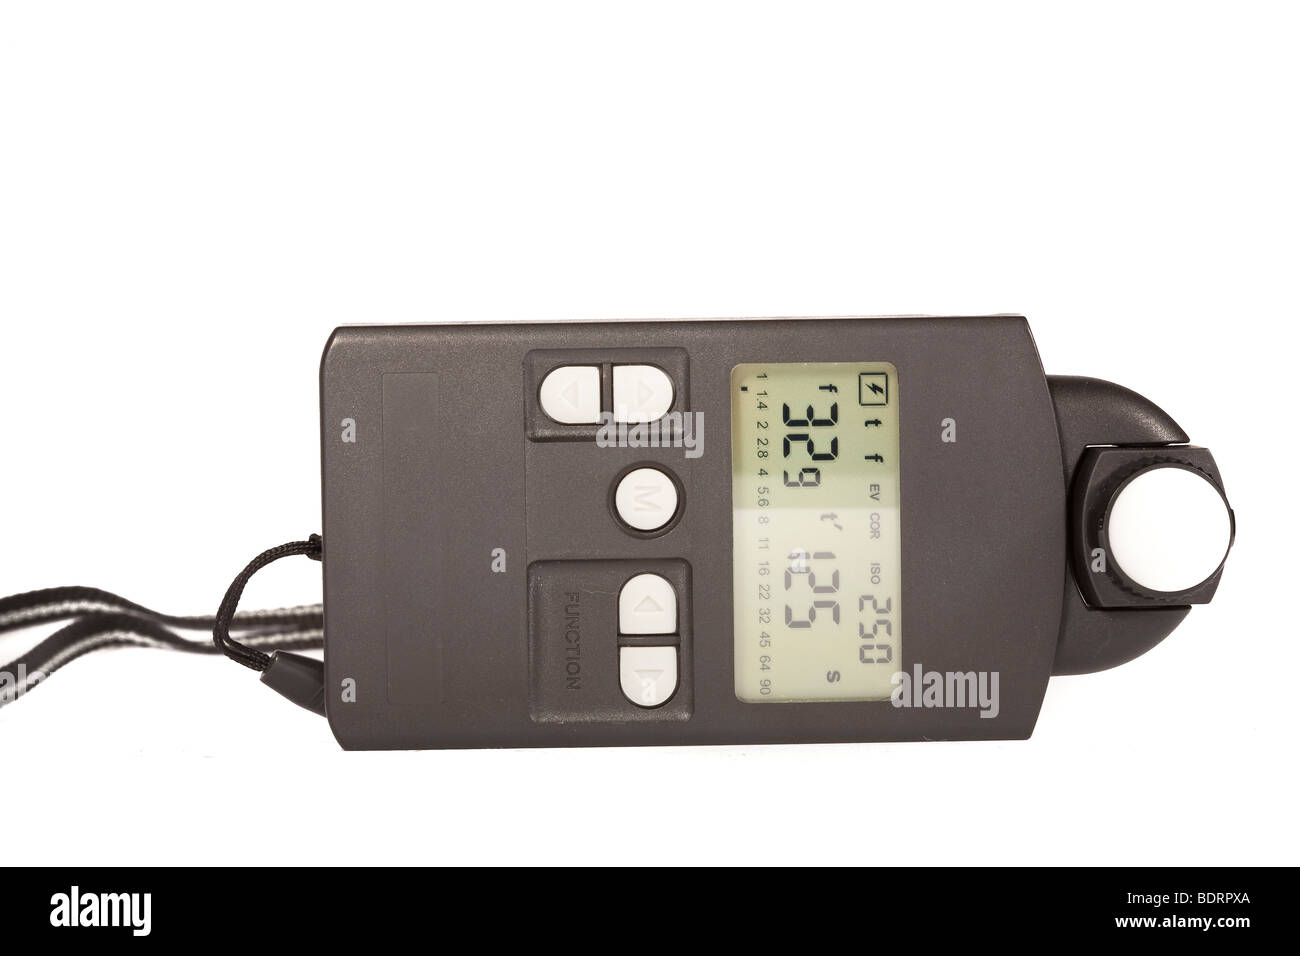 Photographic Light Meter showing f32.9 and shutter speed of 1/125th second - Stock Image